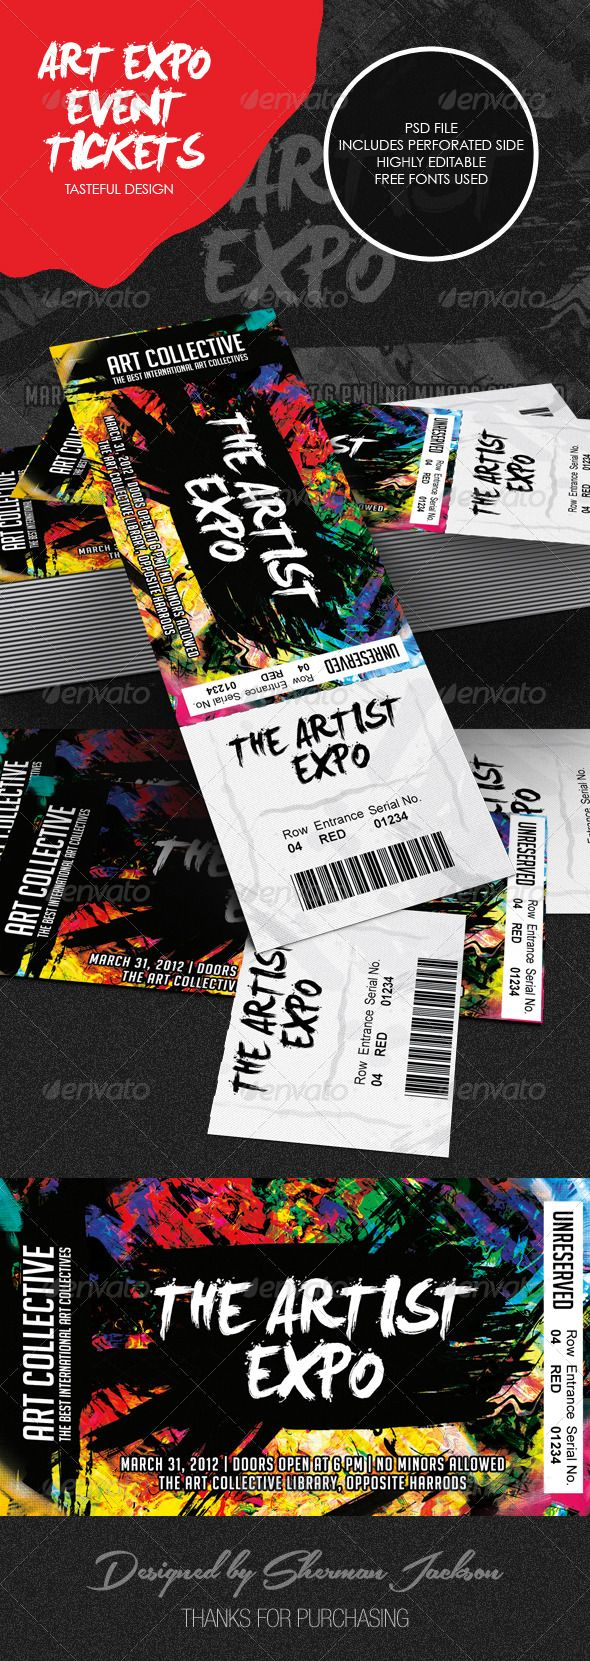 Concert Ticket Template Free Download Pleasing 14 Best Layoutstext And Images Images On Pinterest  Brochures .